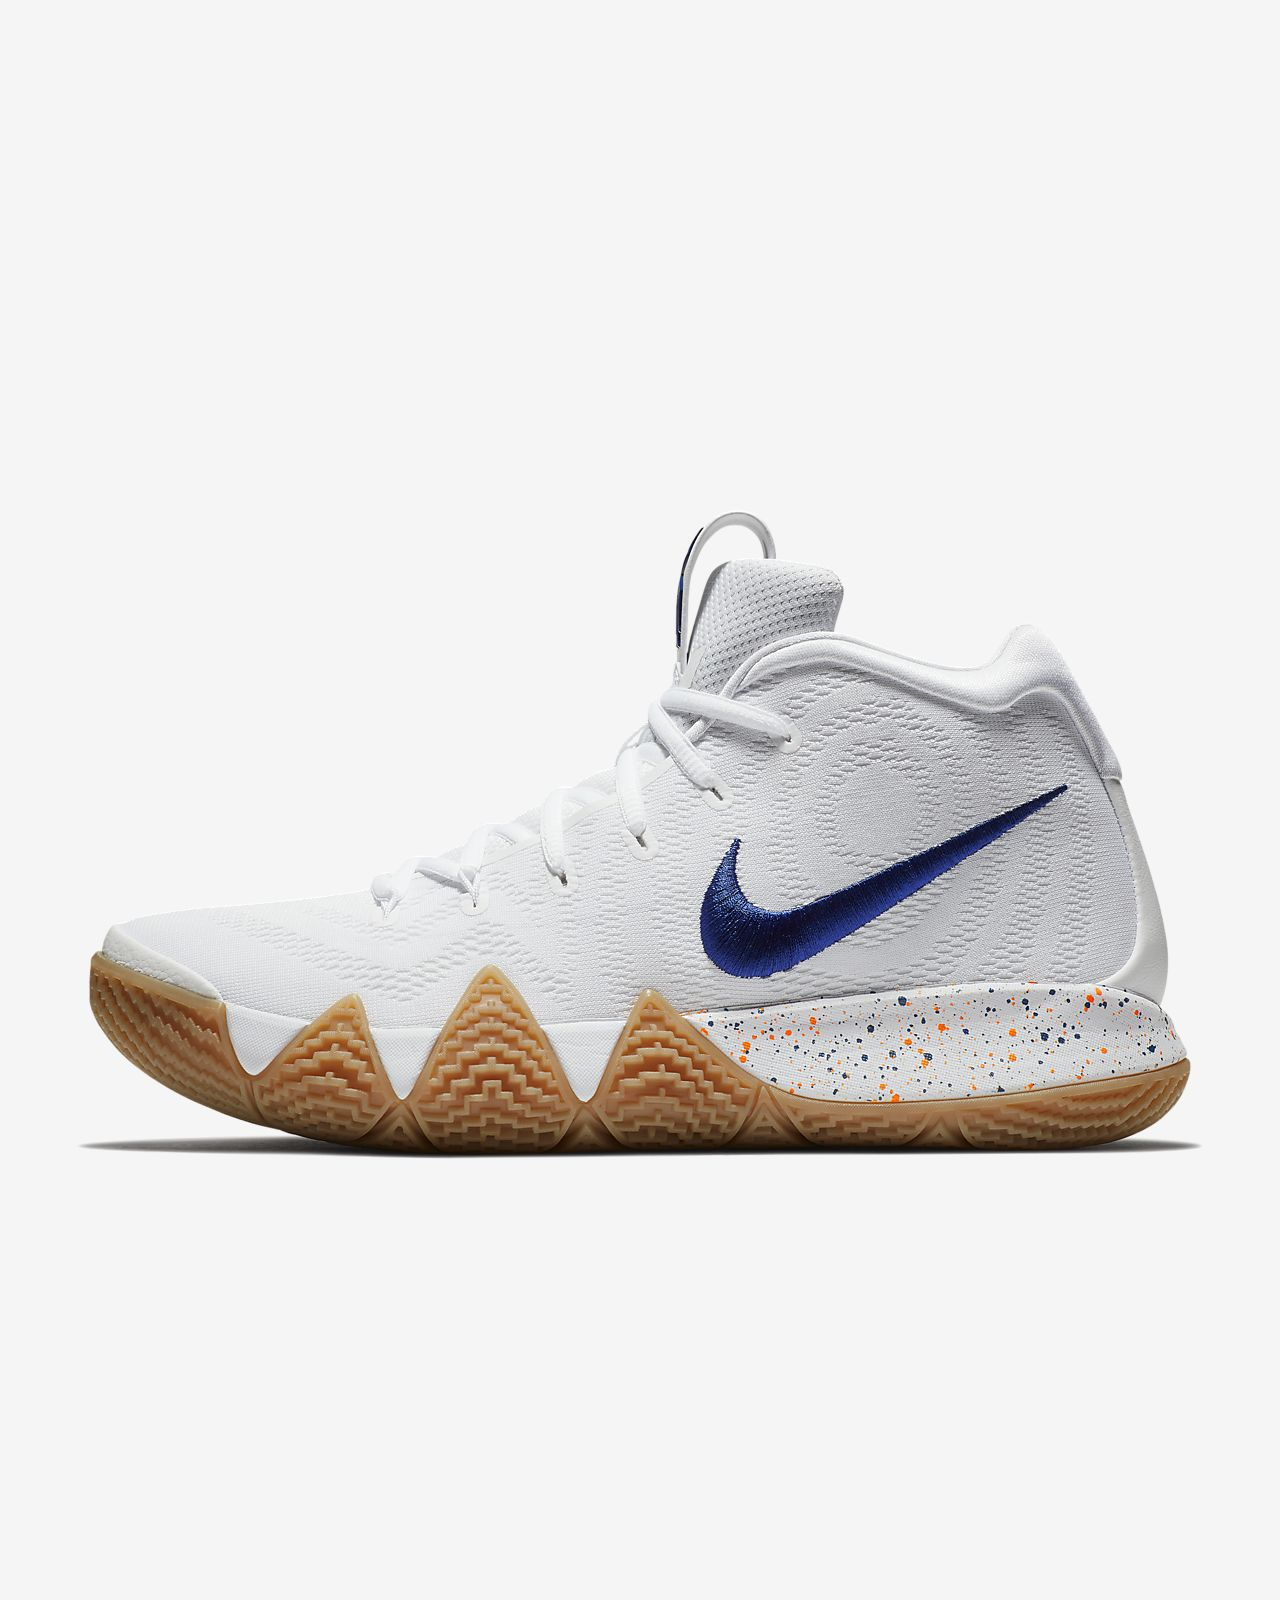 on sale 88cba e10f3 ... Kyrie 4  Uncle Drew  Basketball Shoe